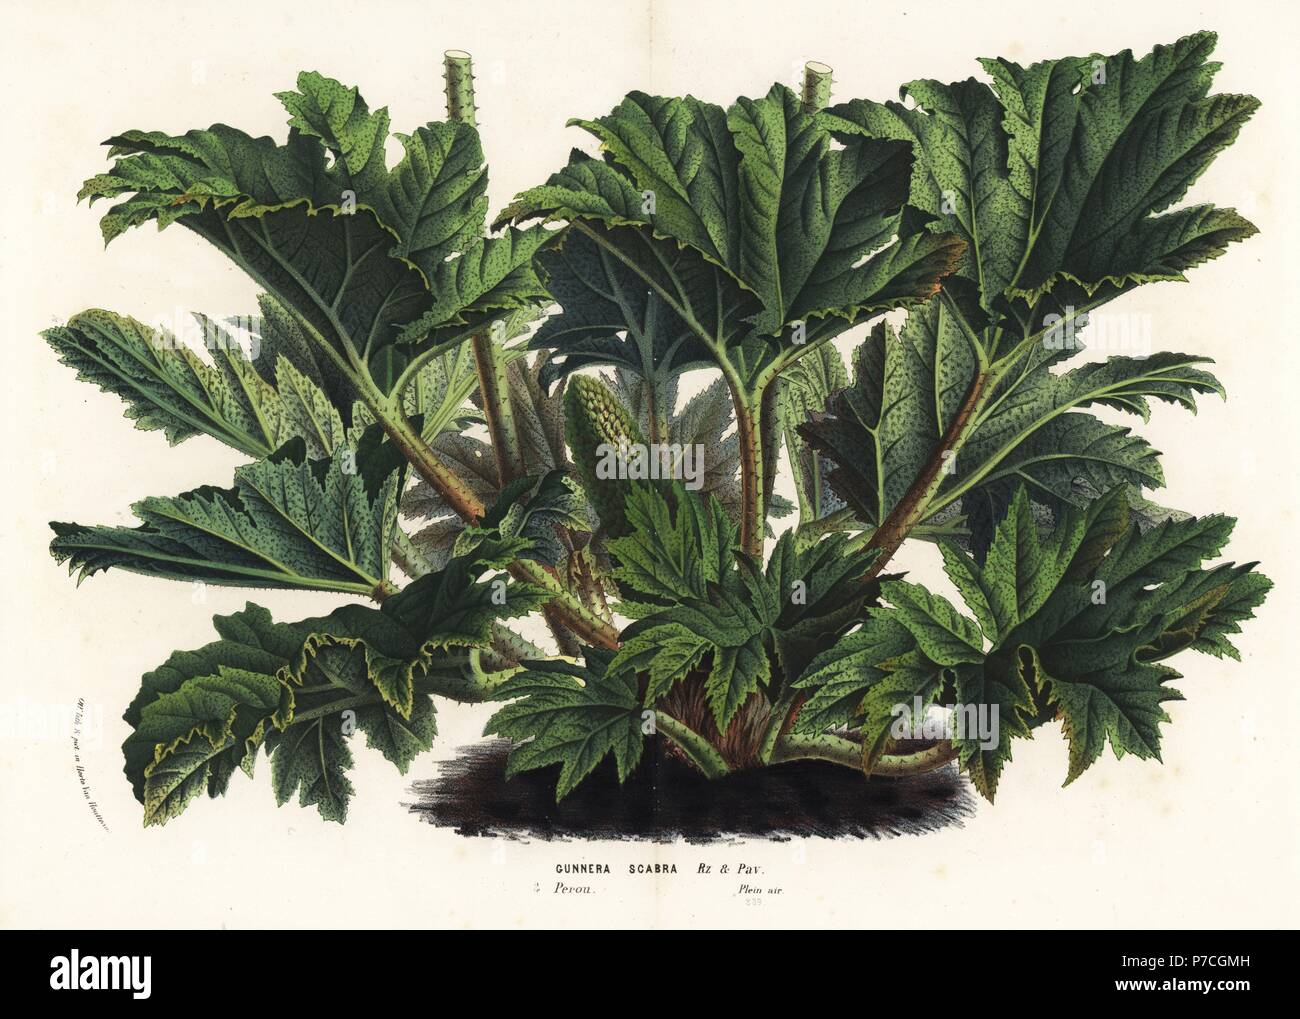 Chilean or giant rhubarb, Gunnera tinctoria (Gunnera scabra). Handcoloured lithograph from Louis van Houtte and Charles Lemaire's Flowers of the Gardens and Hothouses of Europe, Flore des Serres et des Jardins de l'Europe, Ghent, Belgium, 1870. Stock Photo